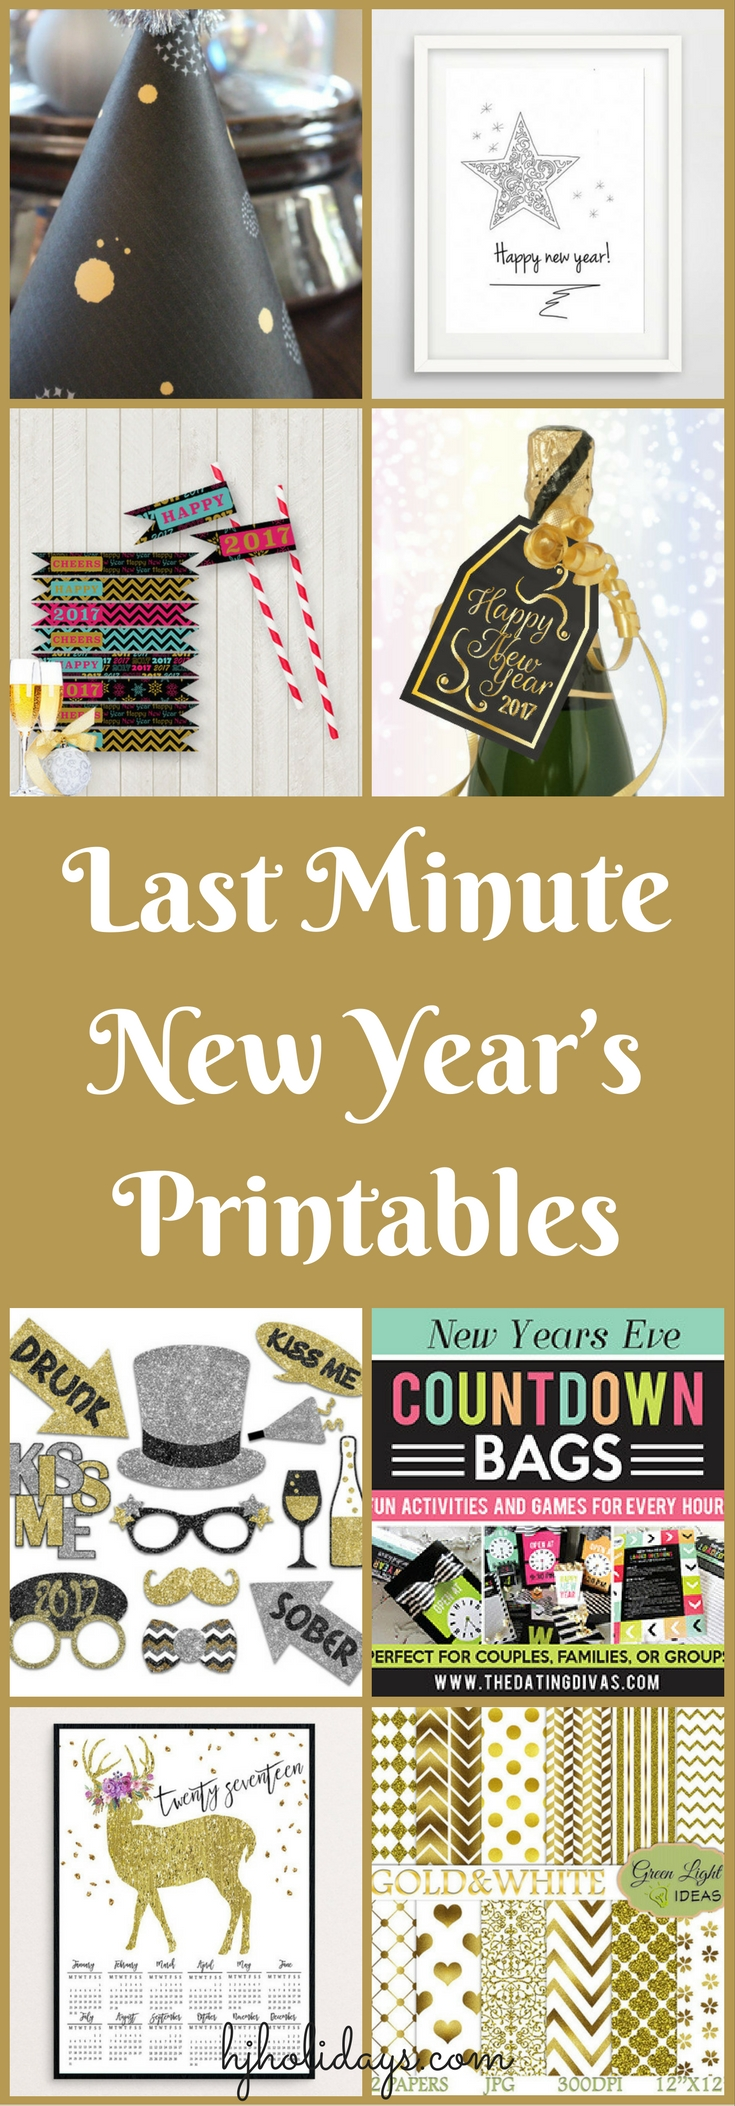 Last Minute New Year's Printables